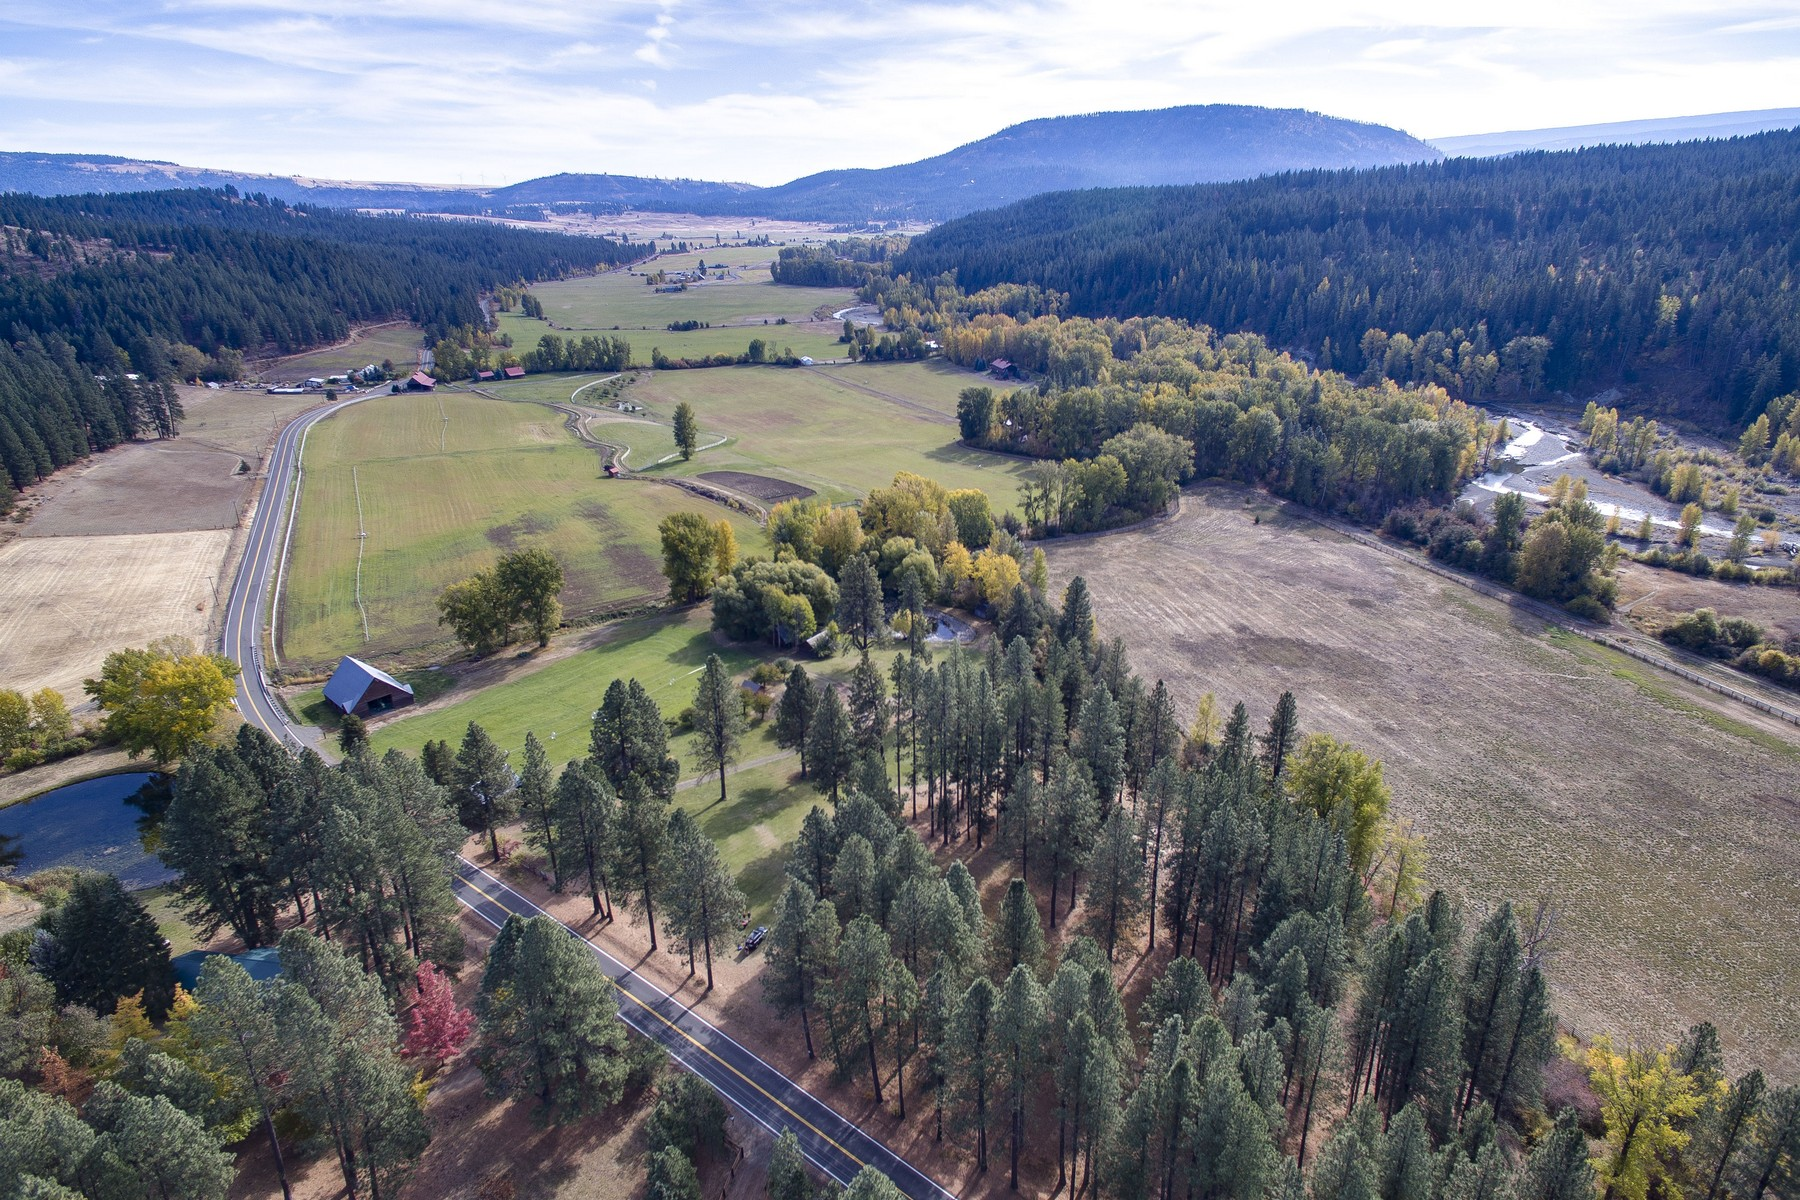 Ferme / Ranch / Plantation pour l Vente à Gentleman's farm 3431 4061 Teanaway Rd Cle Elum, Washington 98922 États-Unis